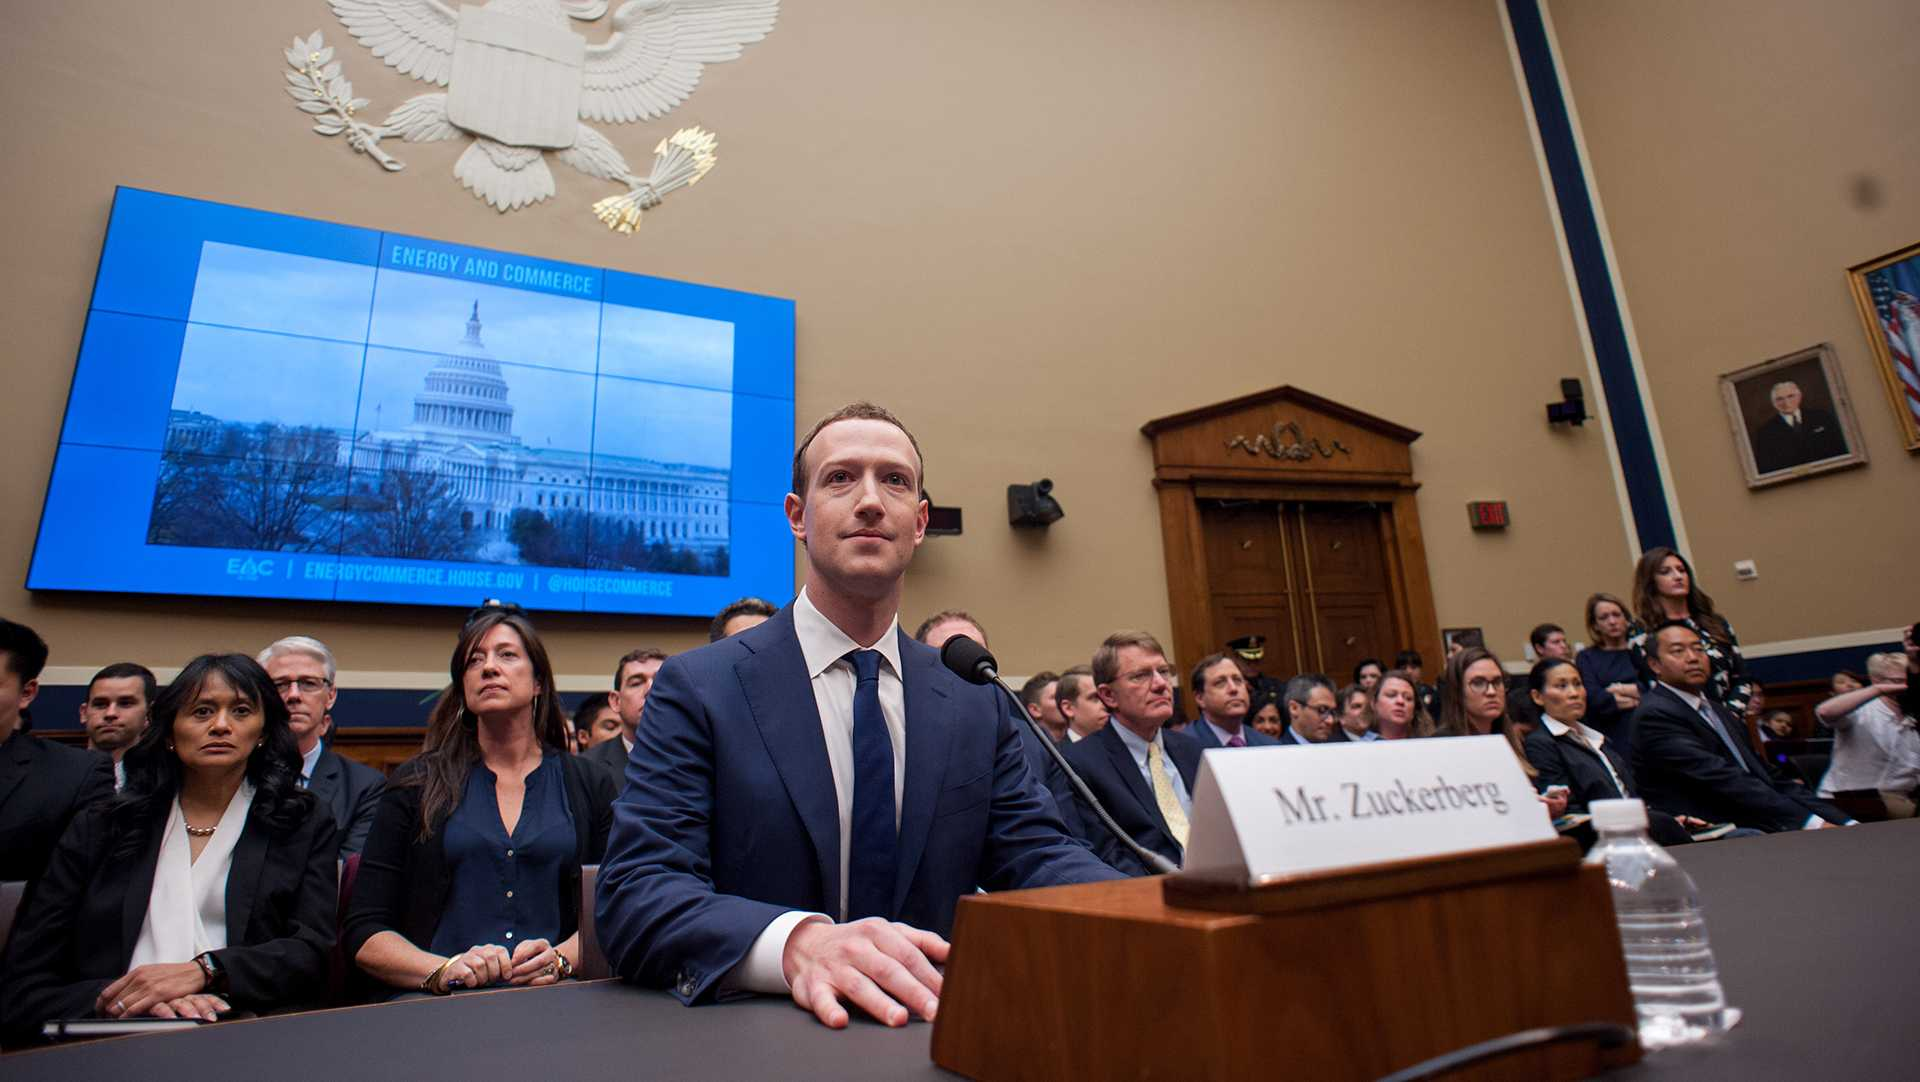 Laursen: The average college student knows more about Facebook than some members of Congress